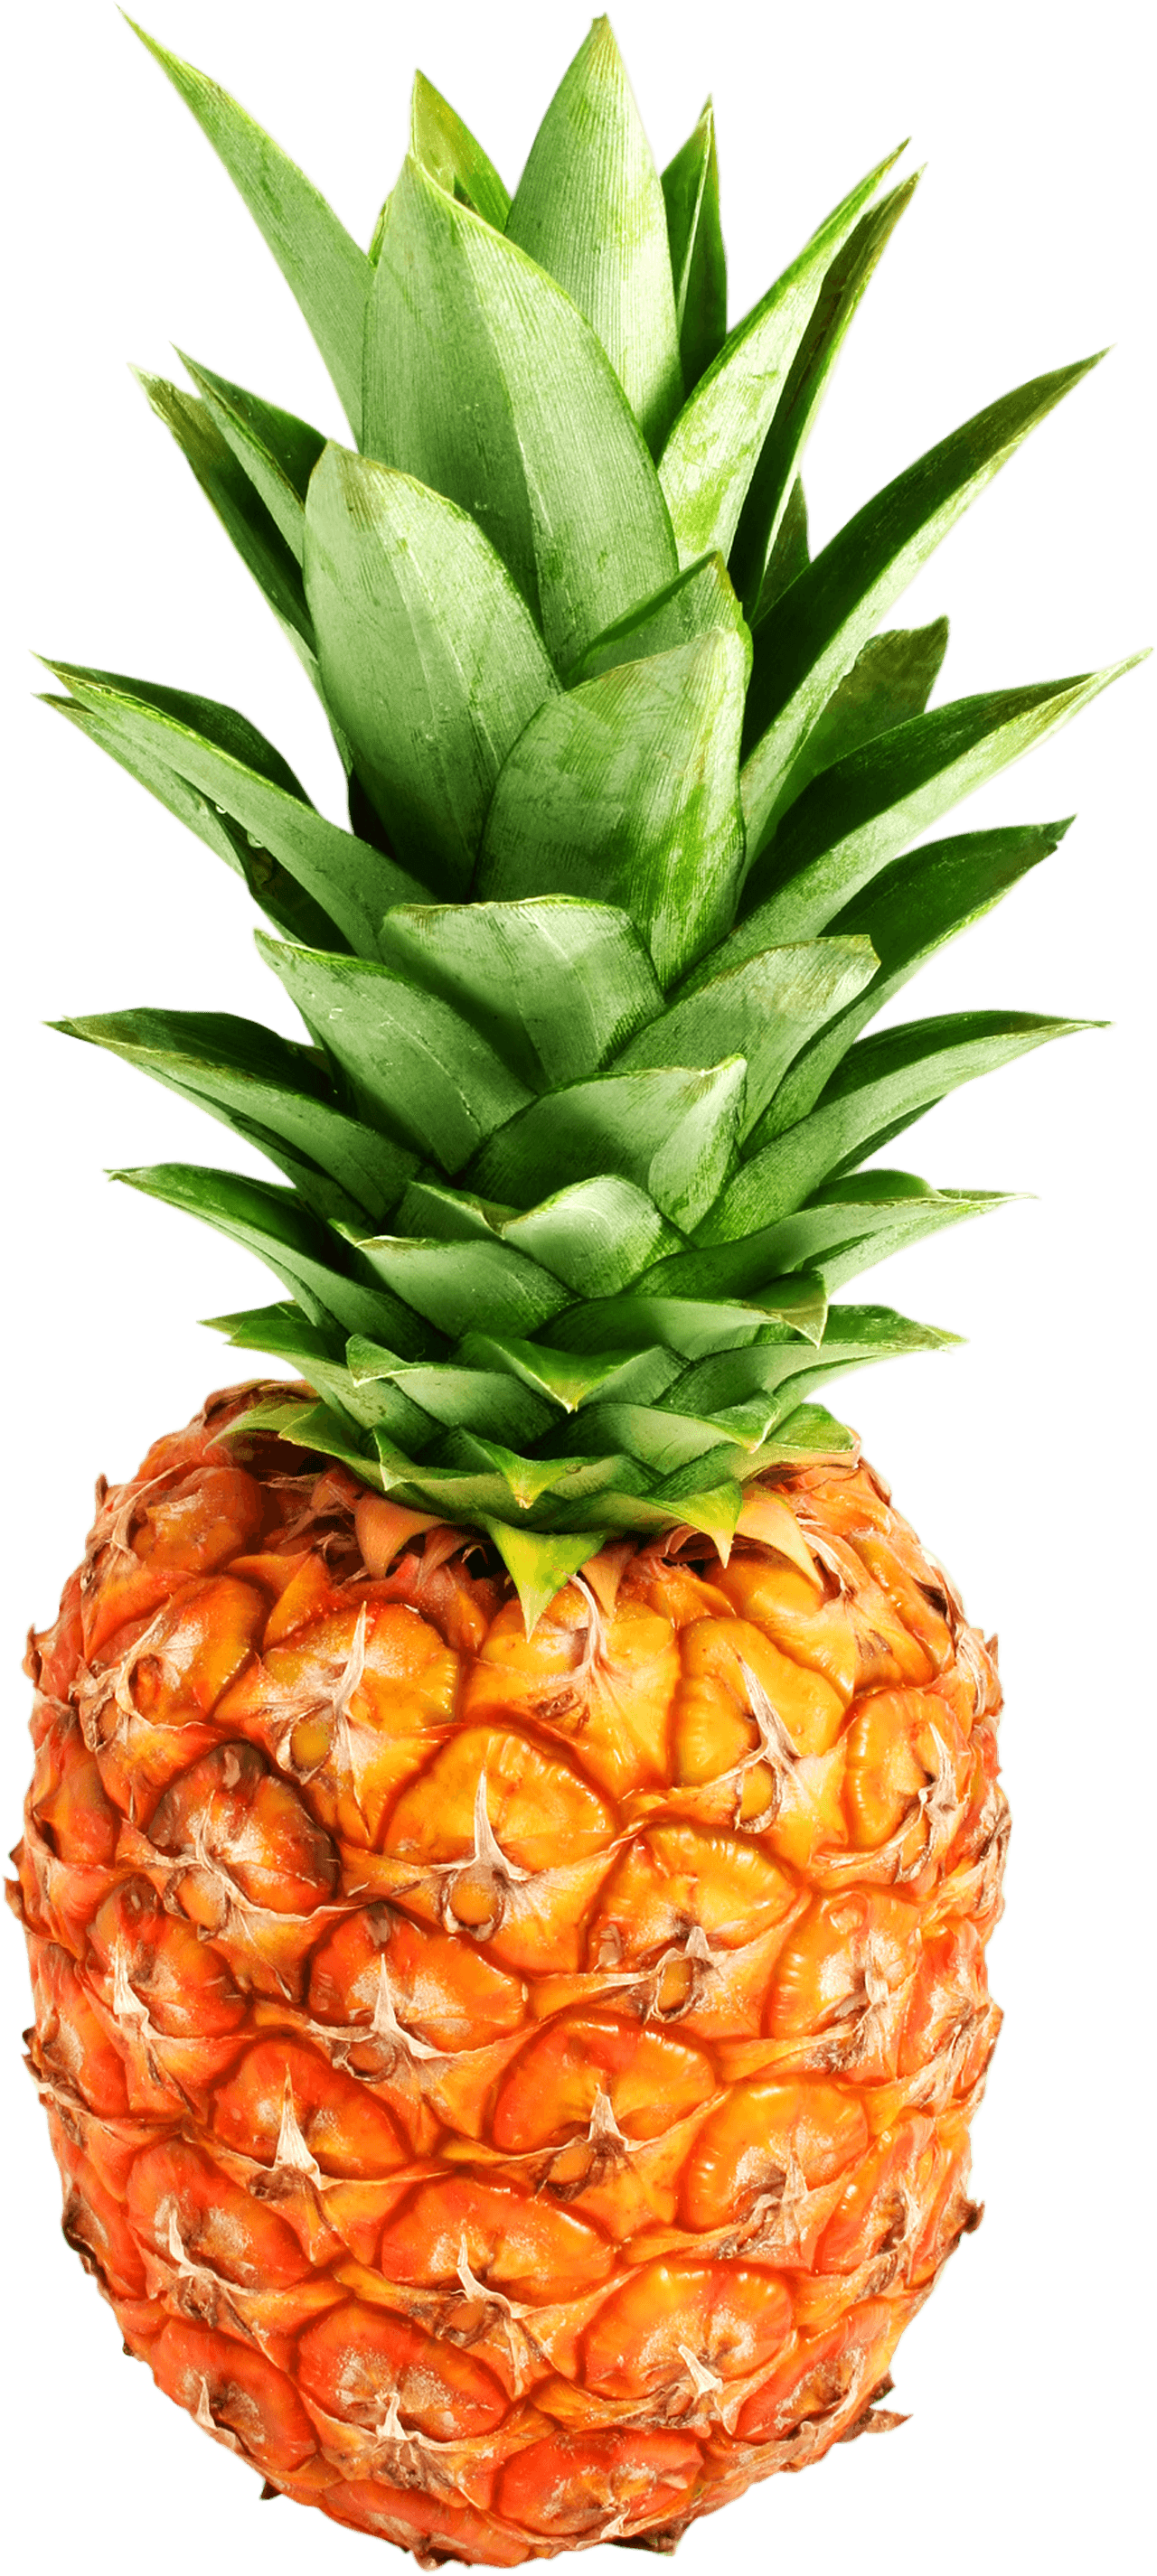 Pineapple clipart no background picture black and white library Pineapple PNG Images Transparent Free Download | PNGMart.com picture black and white library